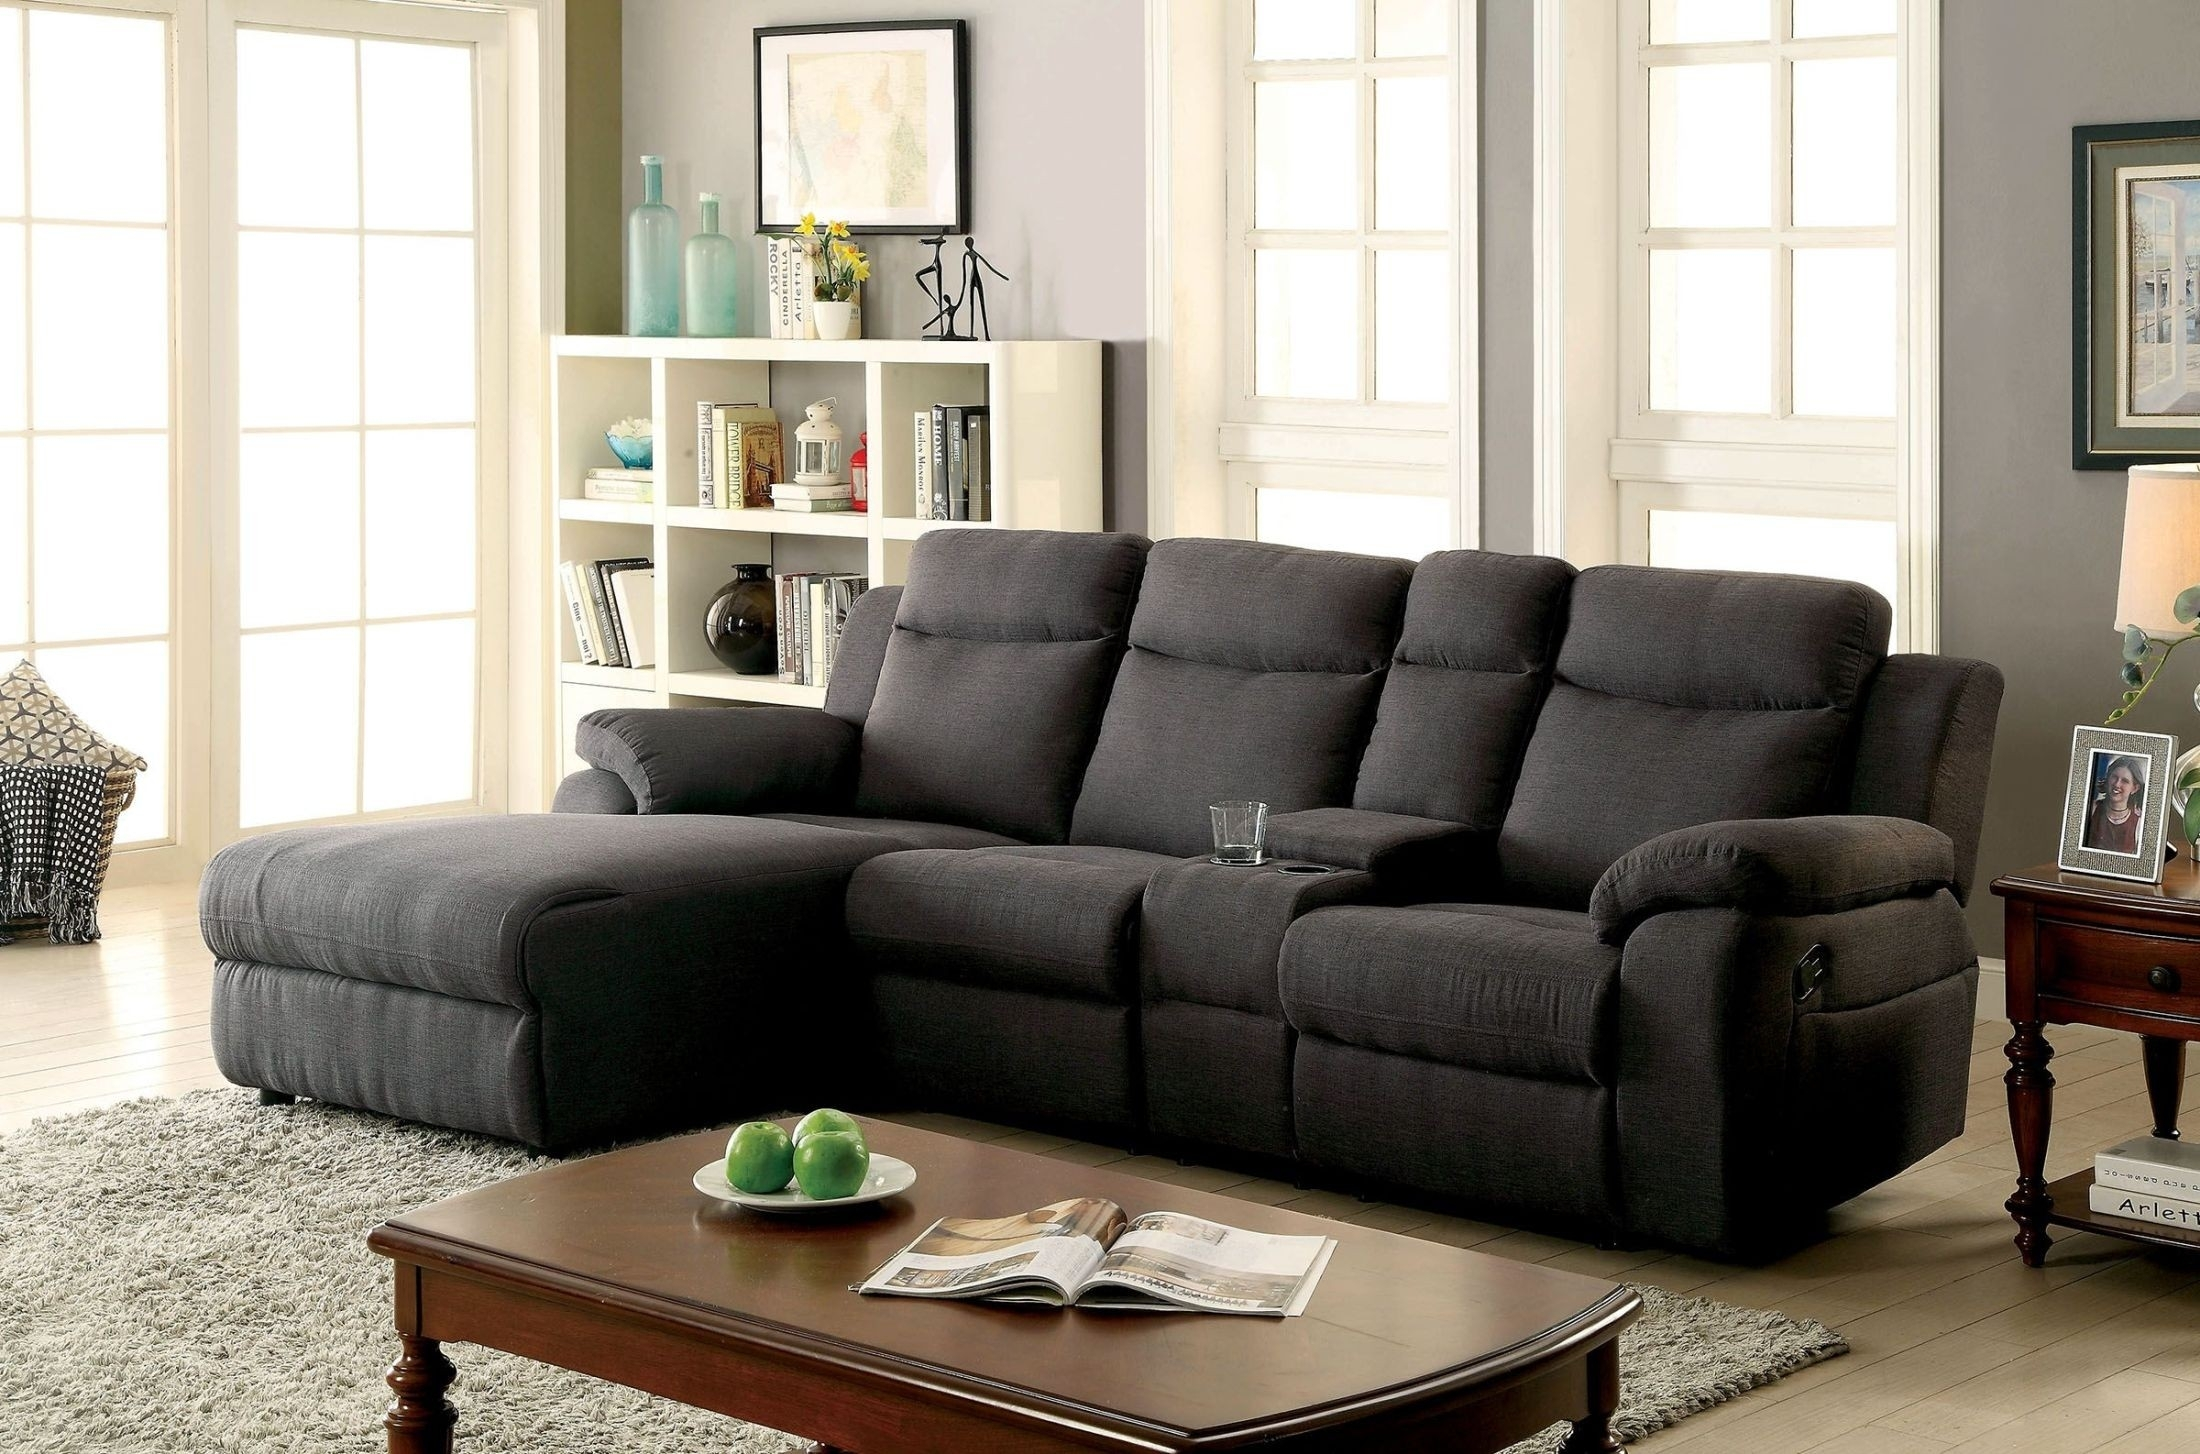 Kamryn Gray Reclining Sectional With Console, Cm6771Gy-Sectional for Lucy Grey 2 Piece Sleeper Sectionals With Raf Chaise (Image 12 of 30)